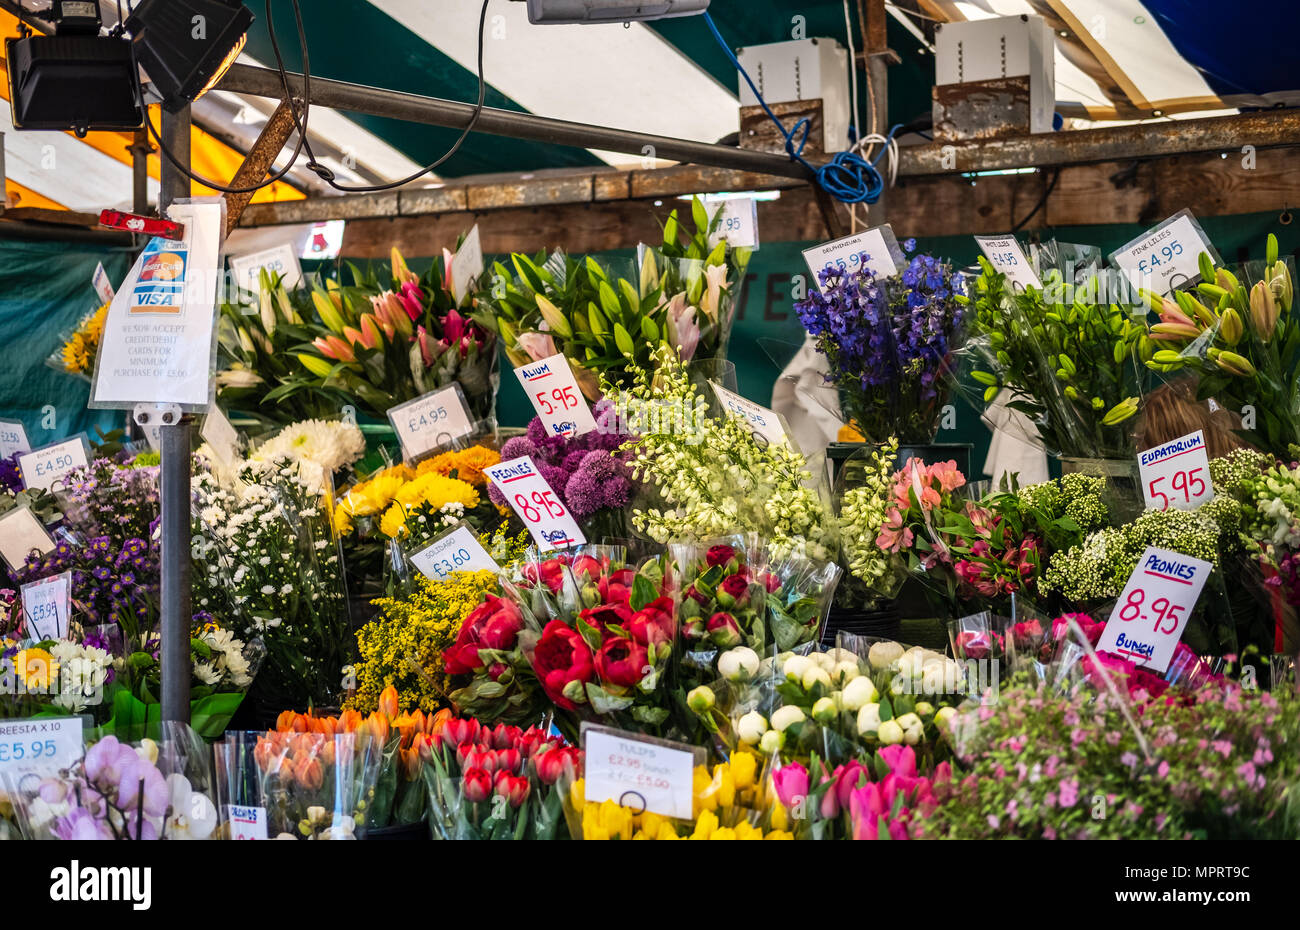 Large, colourful selection of various plants and flowers seen for sale within a flower stall in an open air market. - Stock Image